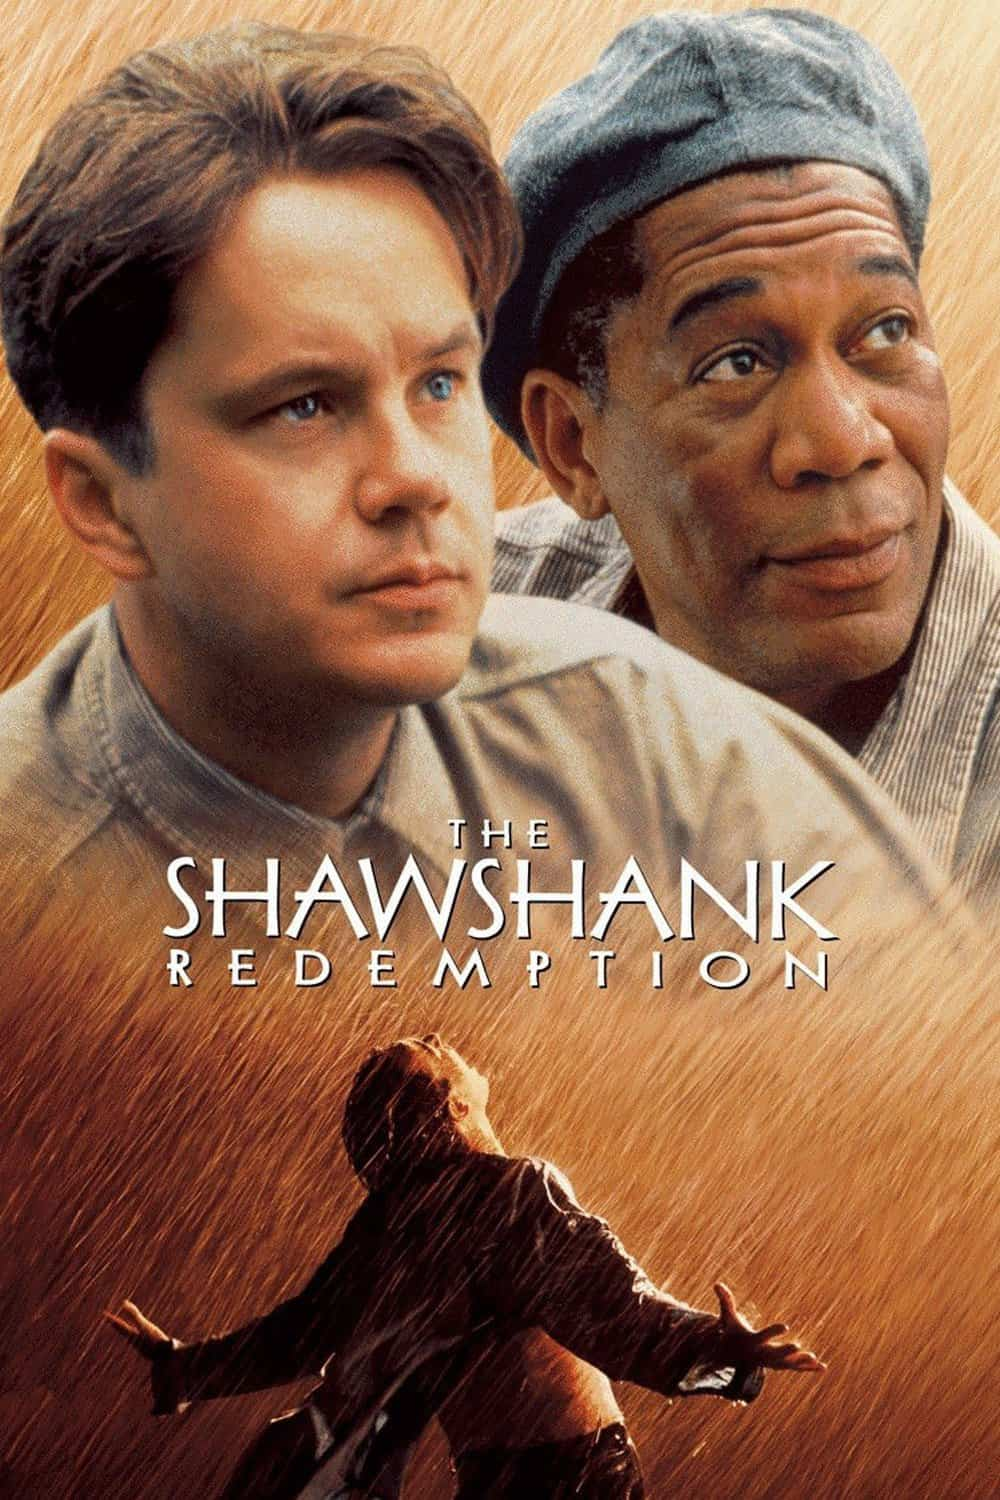 The Shawshank Redemption,1994